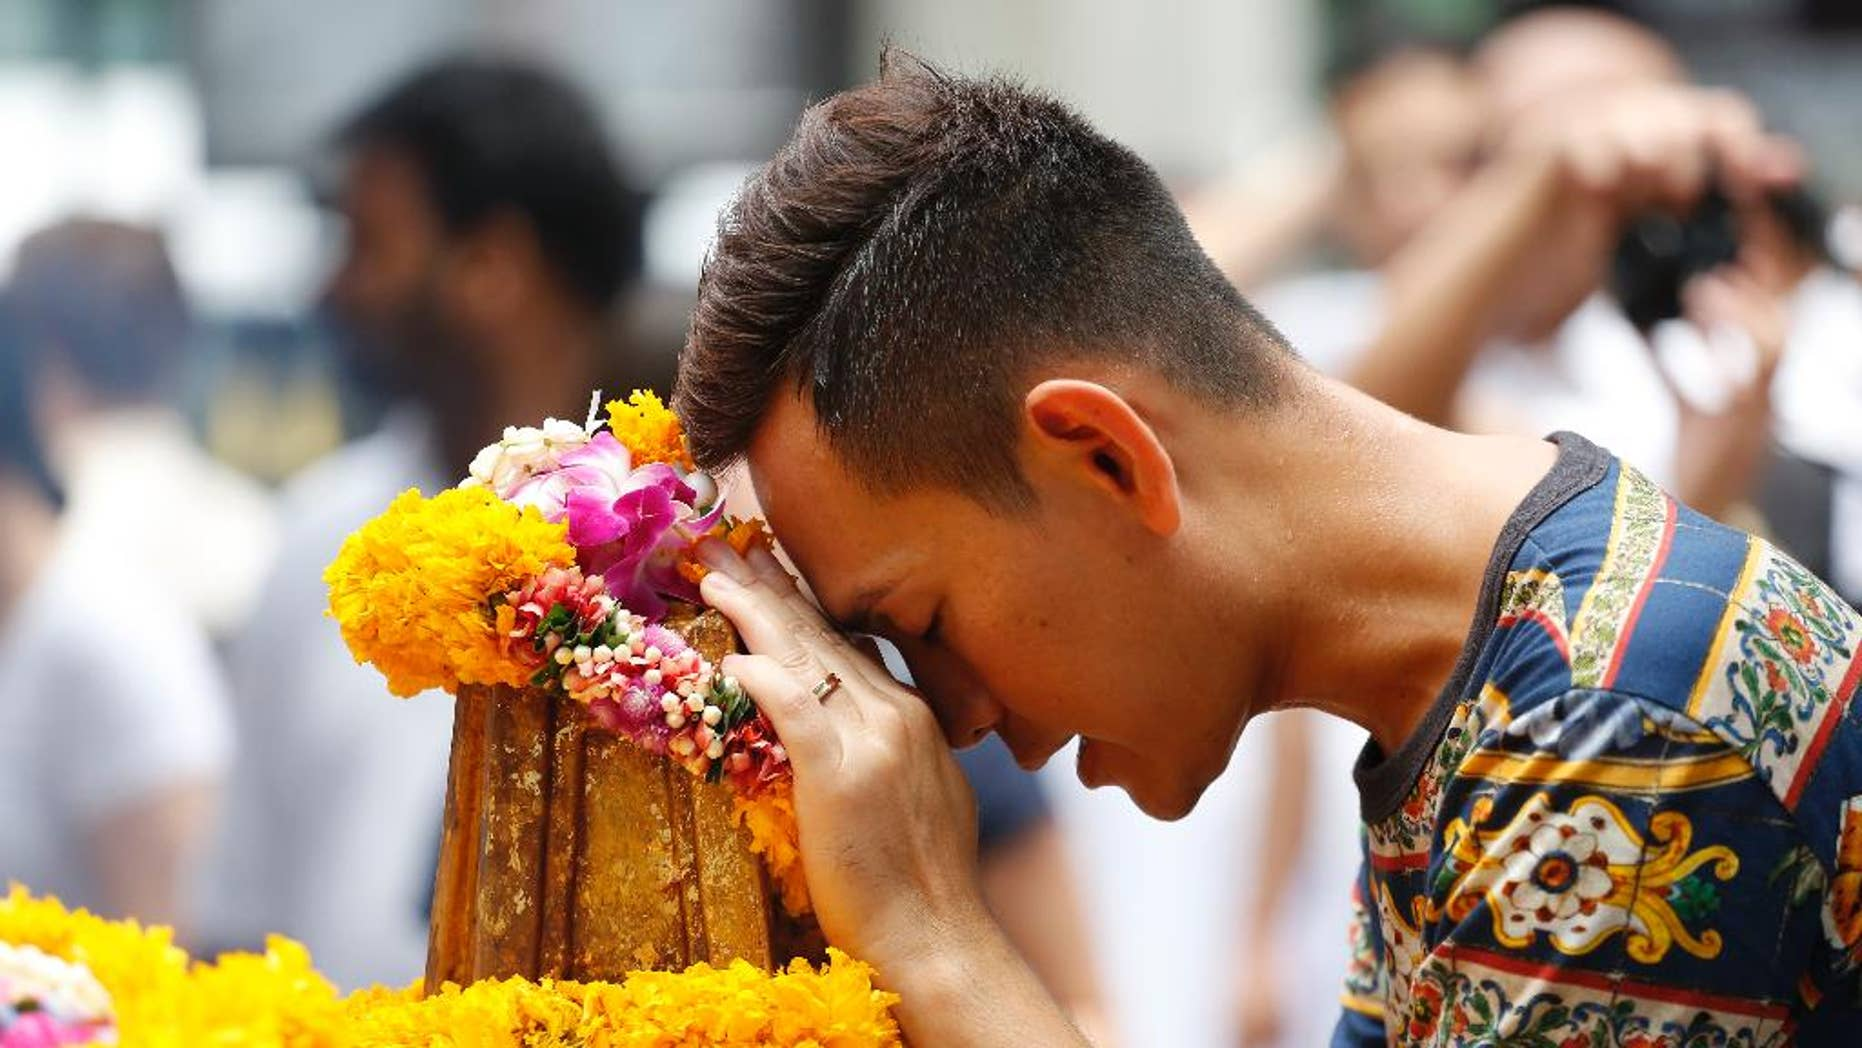 In this Aug. 24, 2015, file photo, a man prays at the Erawan Shrine at Rajprasong intersection, the scene of the Aug. 17 bombing, in Bangkok, Thailand. Thai police probing Bangkok's deadly bombing said on Monday, Aug. 31, 2015, that they have discovered bomb-making materials during a raid of a second apartment on the outskirts of the capital. (AP Photo/Sakchai Lalit, File)